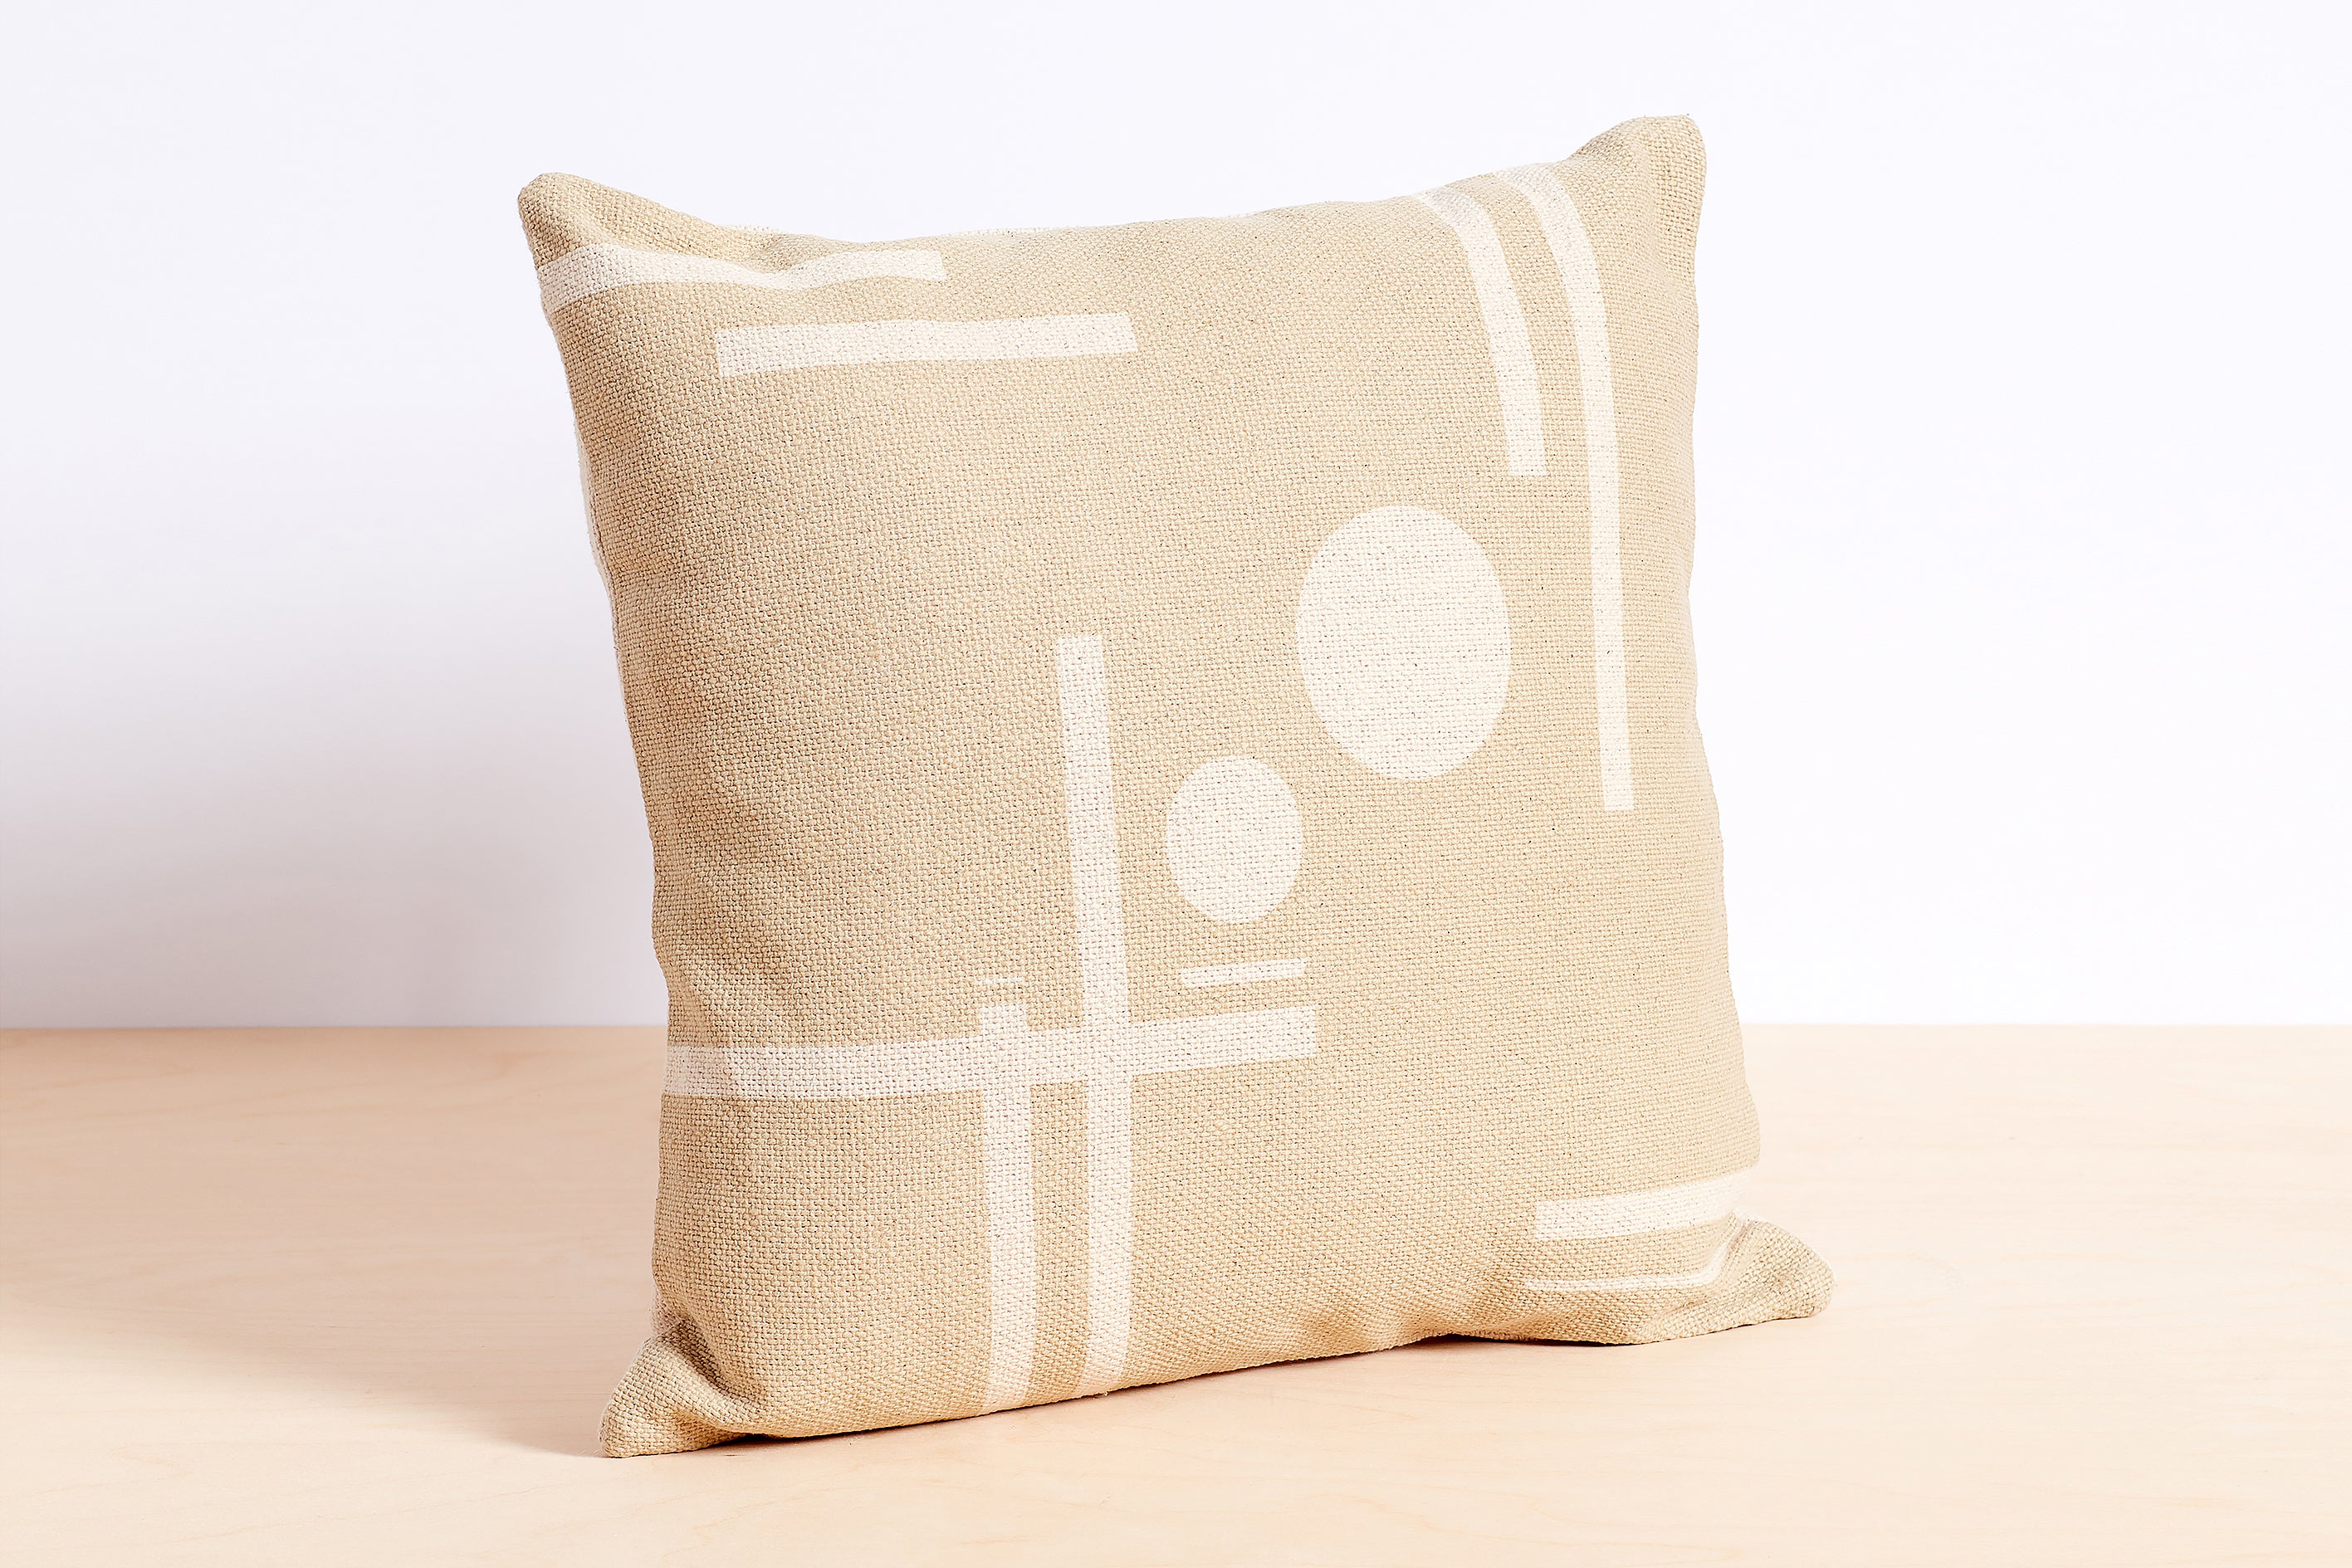 Printed Geo Textured Pillow